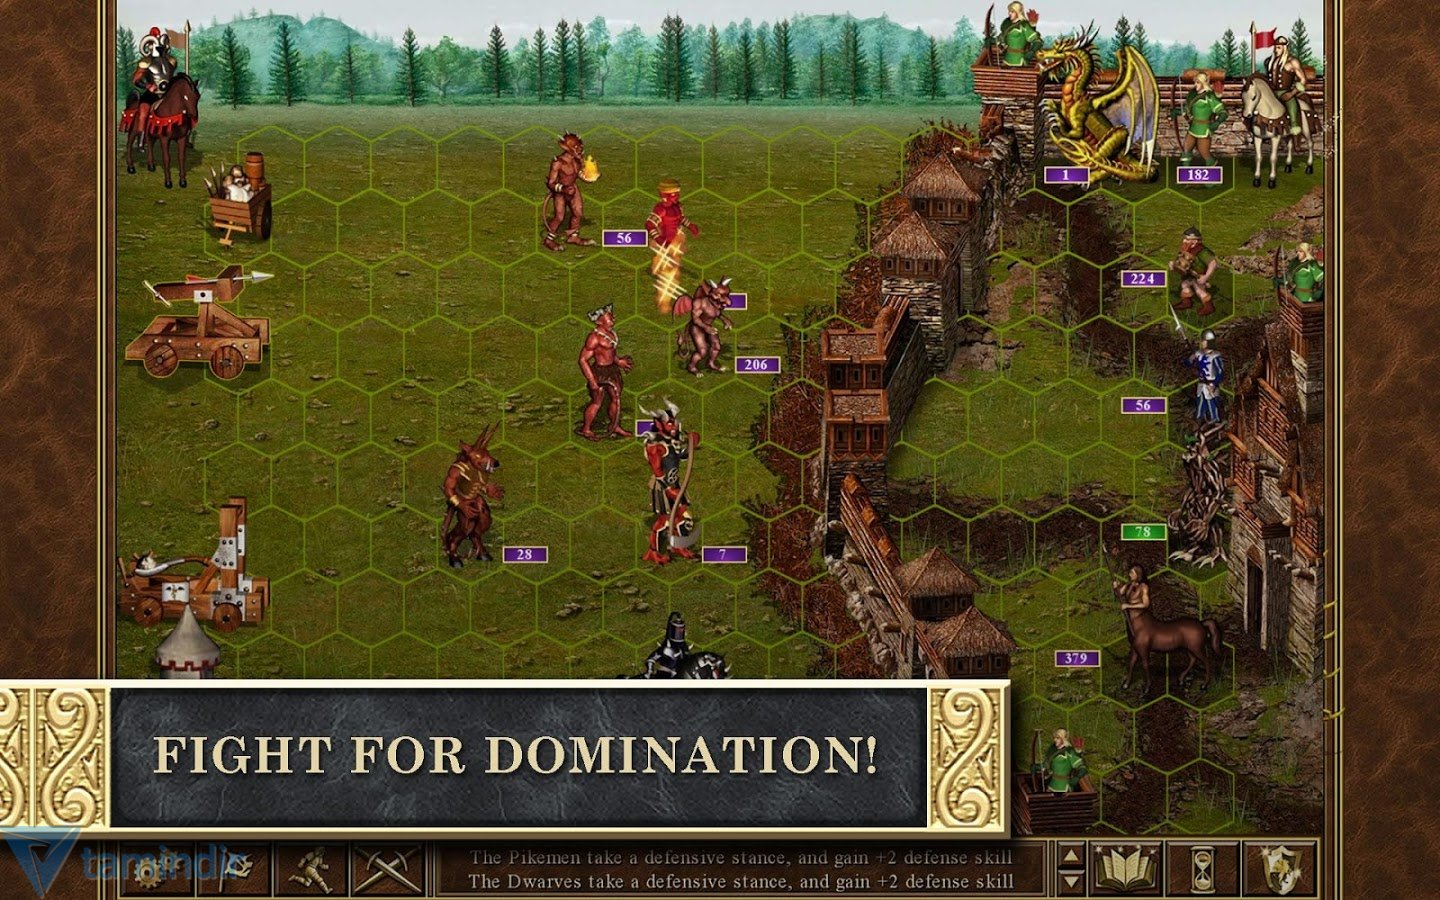 Heroes of Might and Magic (серия игр) — Википедия